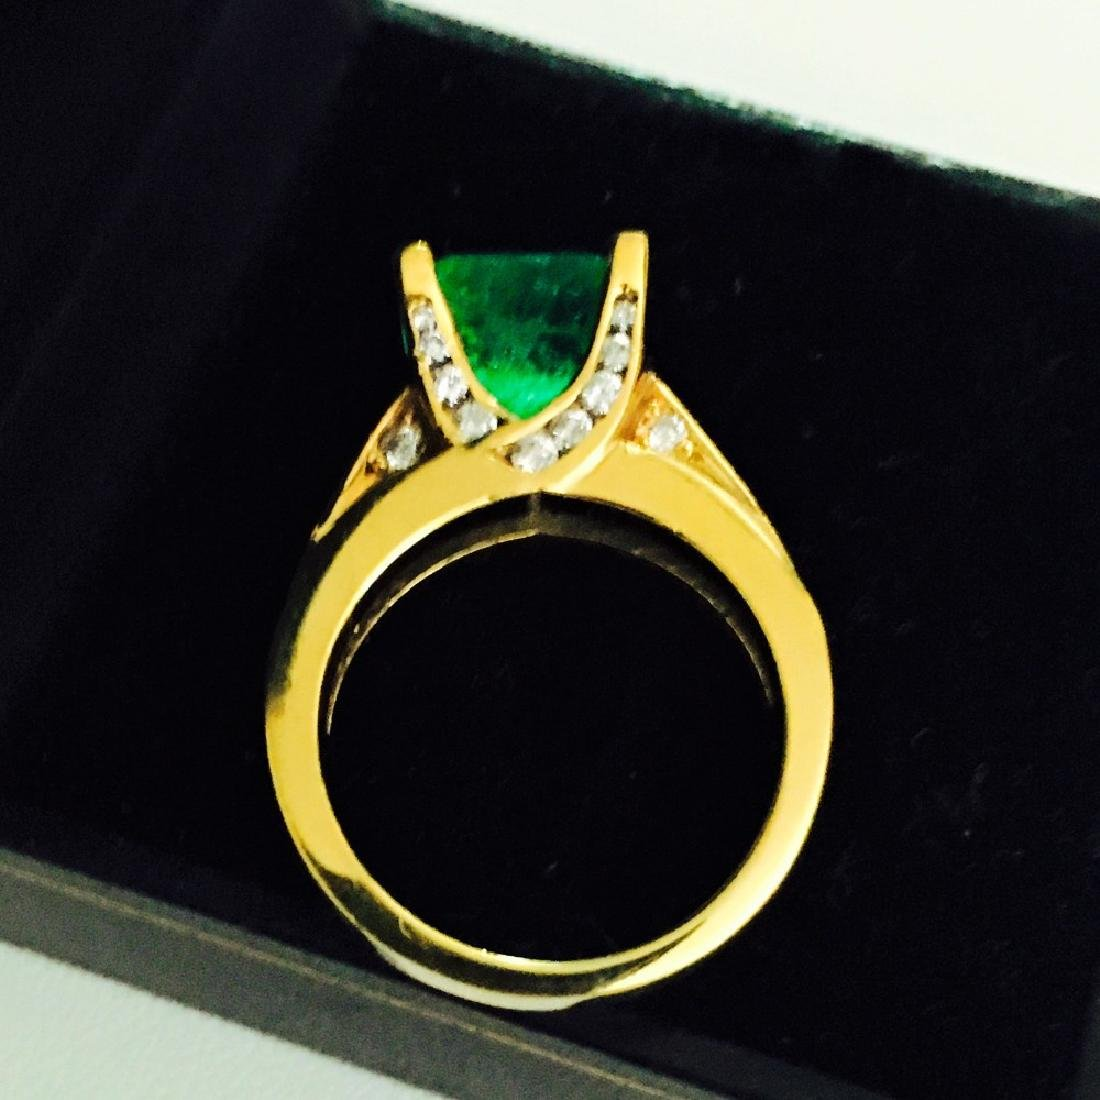 18k Gold, Diamond And Colombian Emerald Ring (GIA) - 4